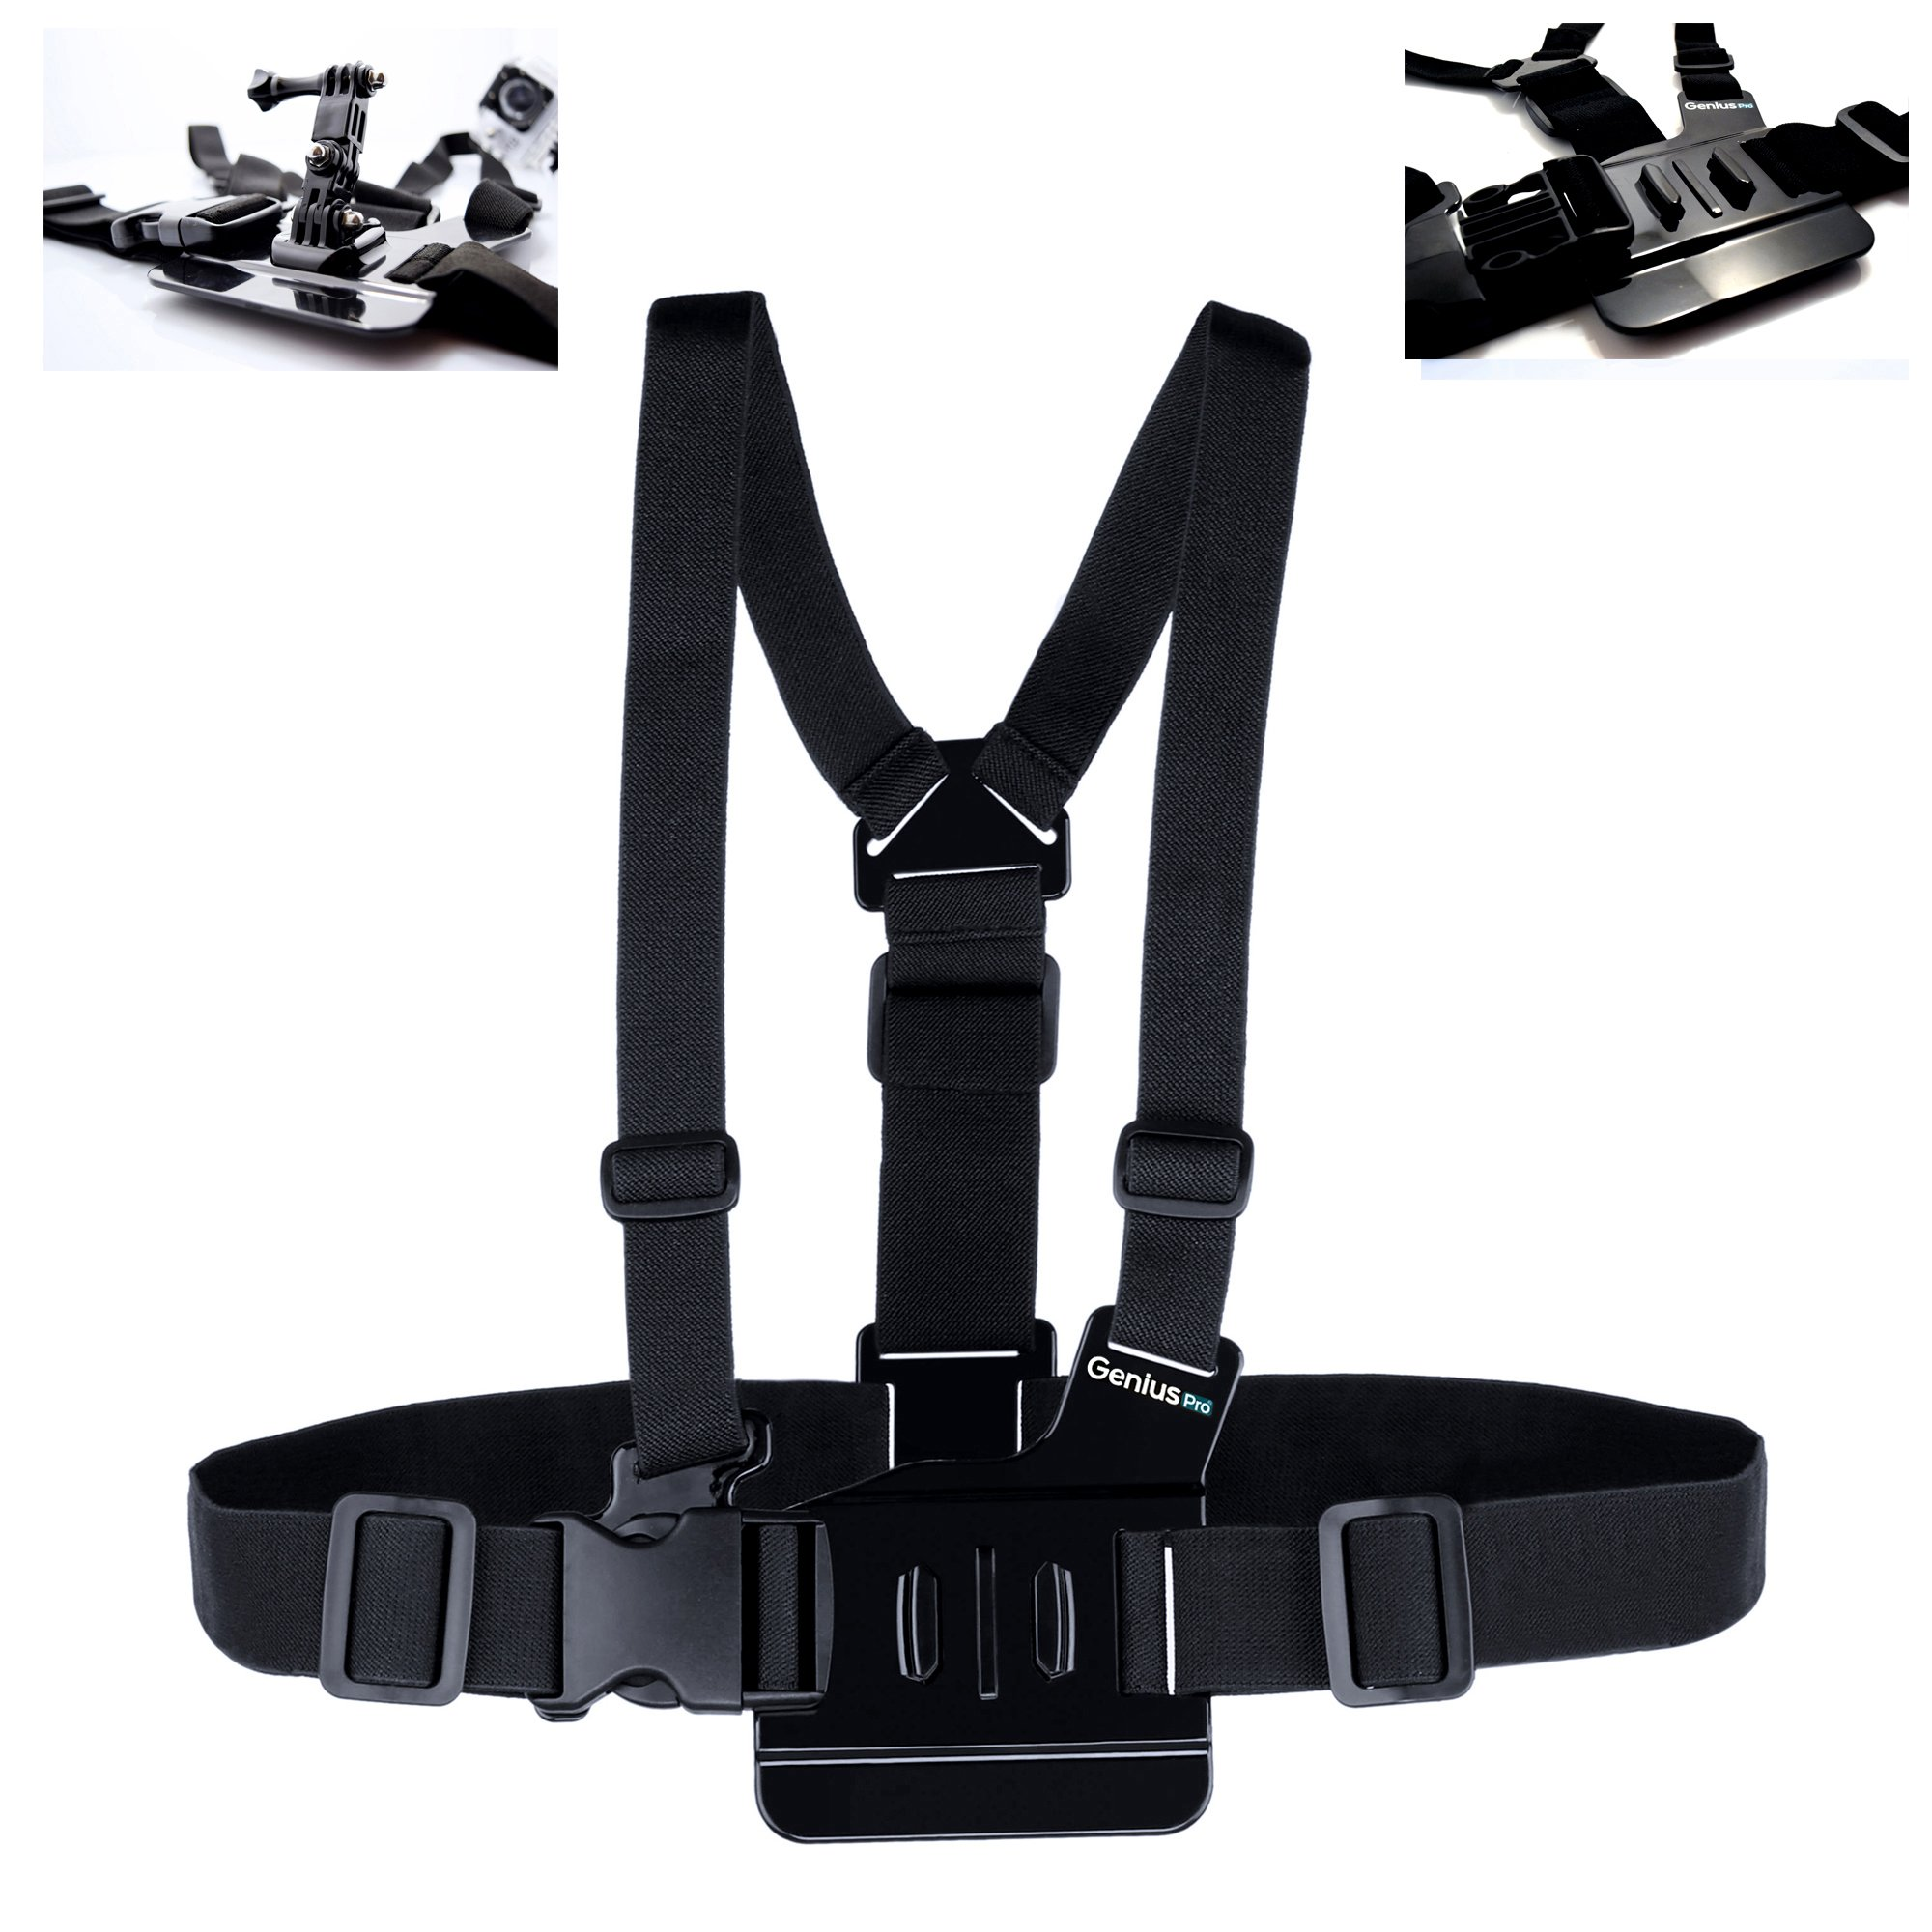 GeniusPro Chest Strap Mount Harness GoPro with Extra 3-way adjustment base for Hero 4/3+/3/2/1/SJ4000/XIAOY I